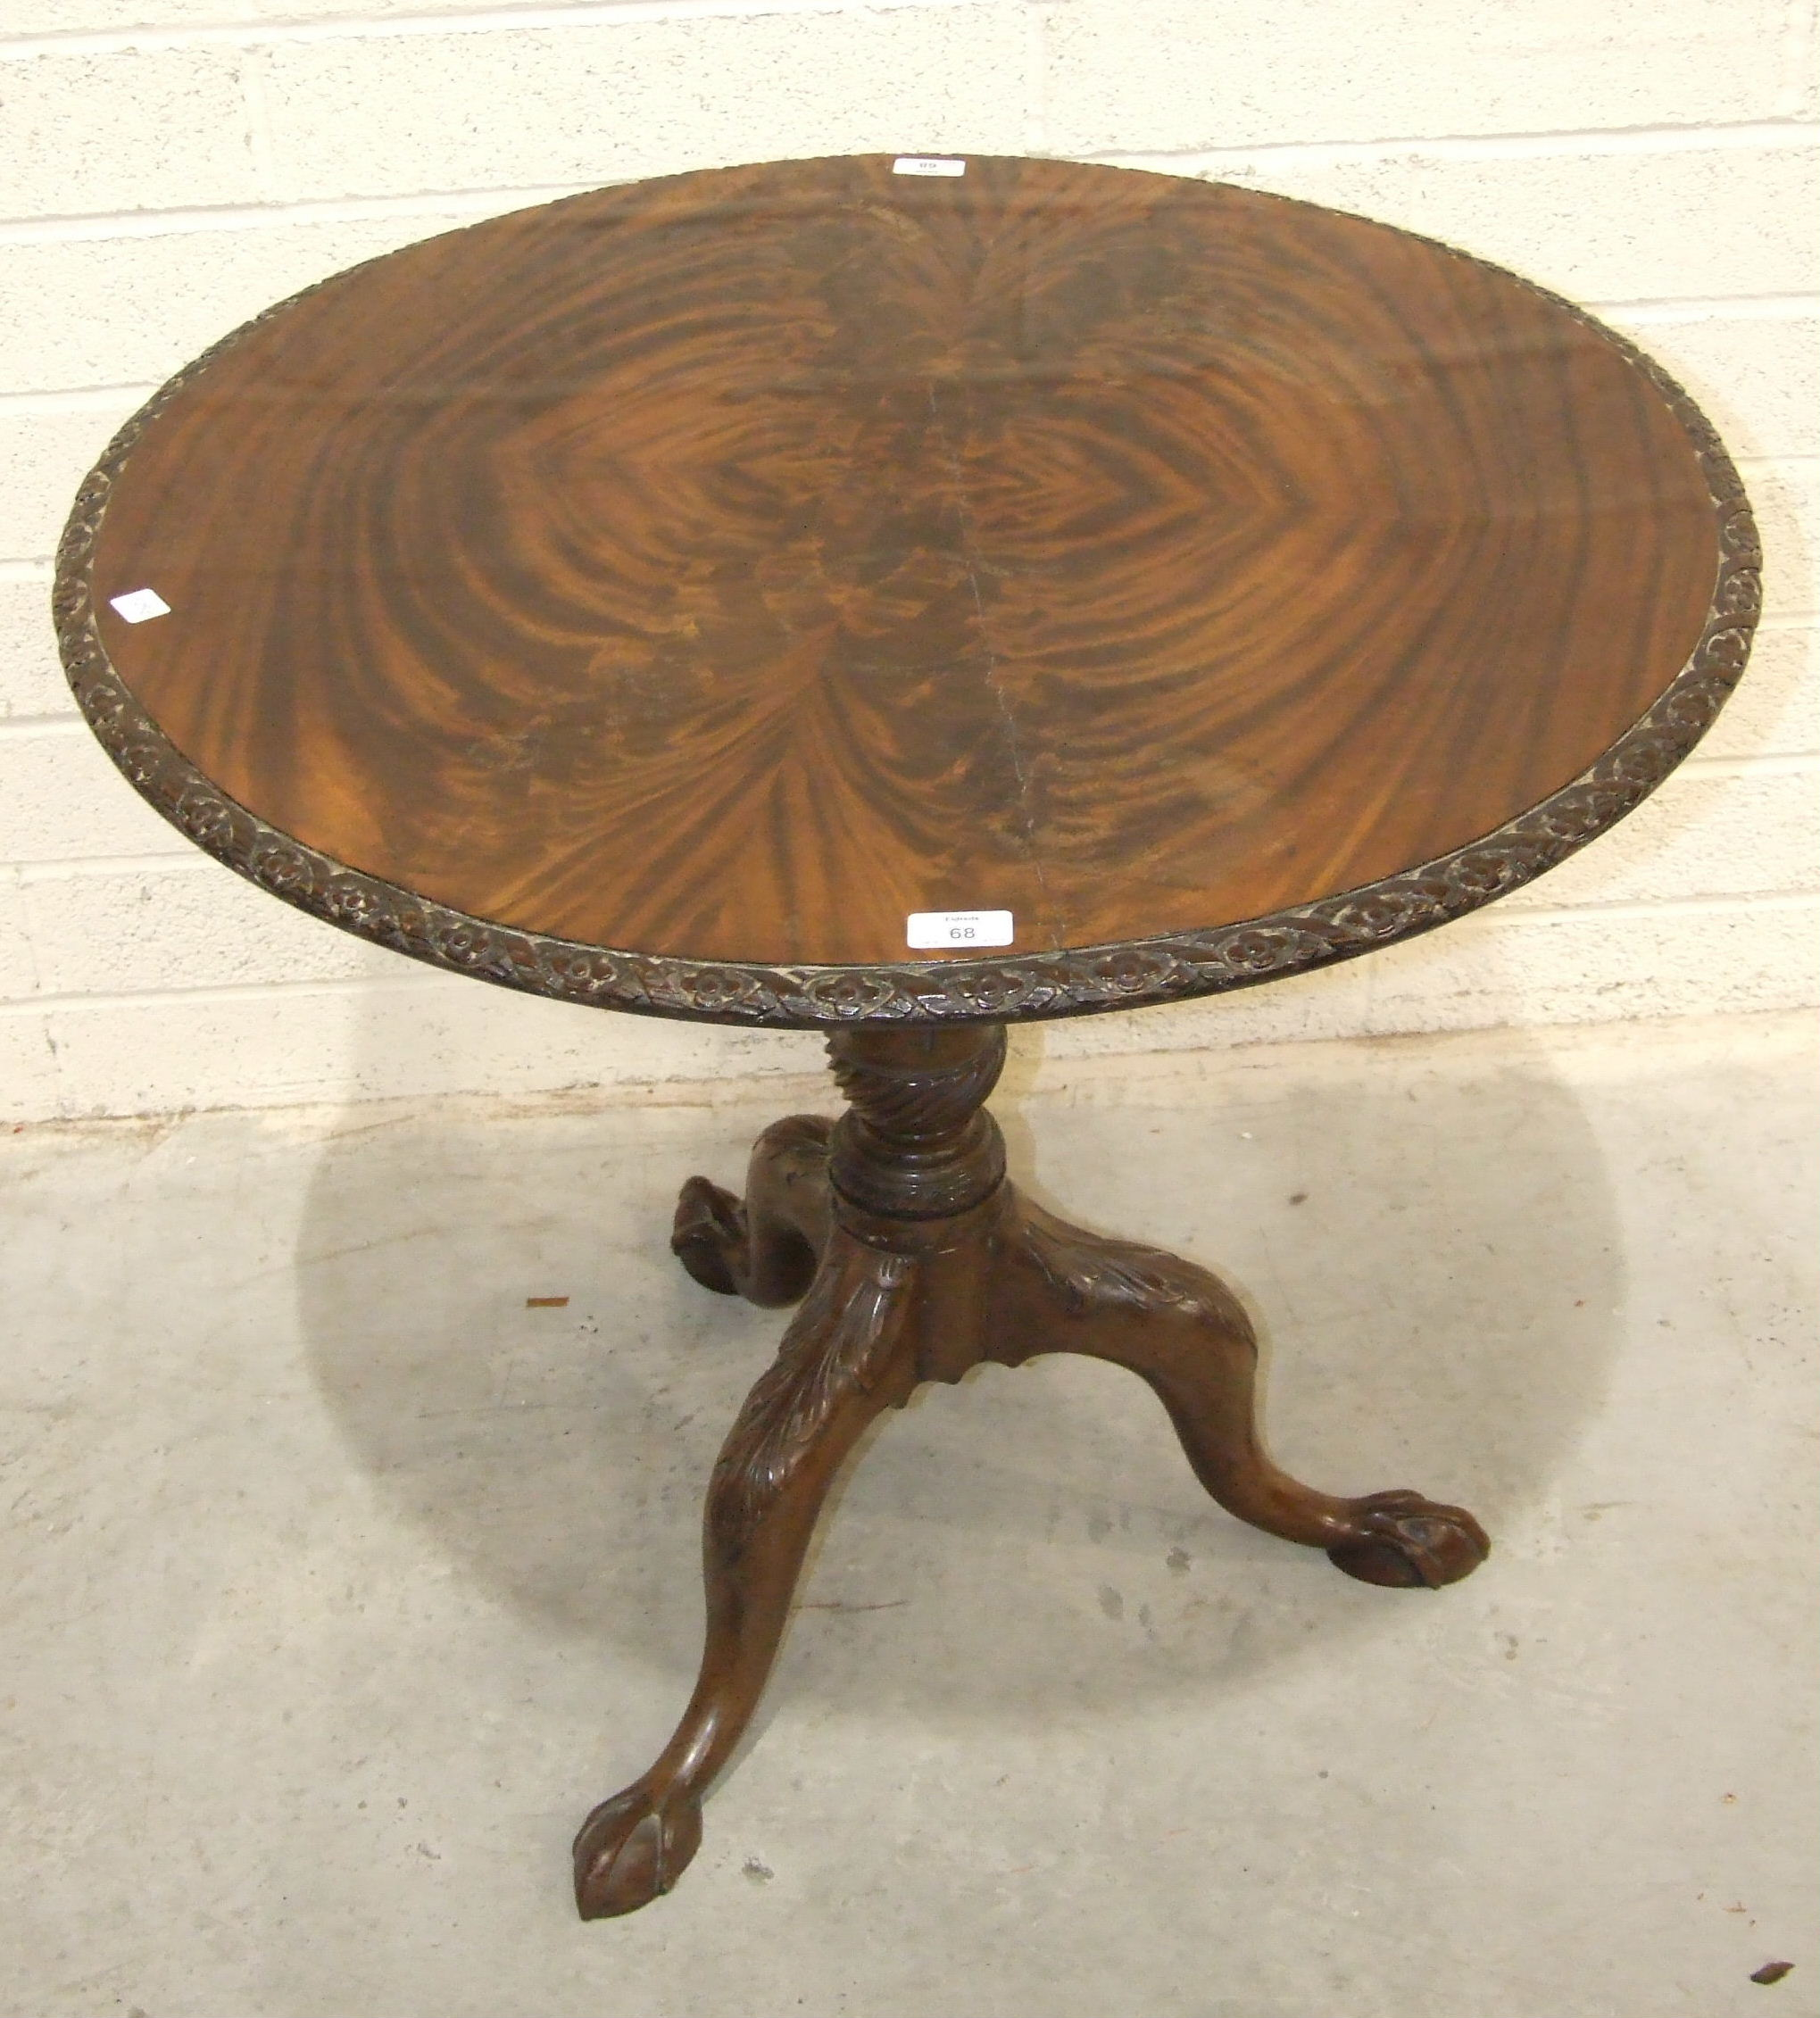 Lot 68 - An 18th century mahogany tripod table stem, with leaf-carved legs, claw feet and later circular top,